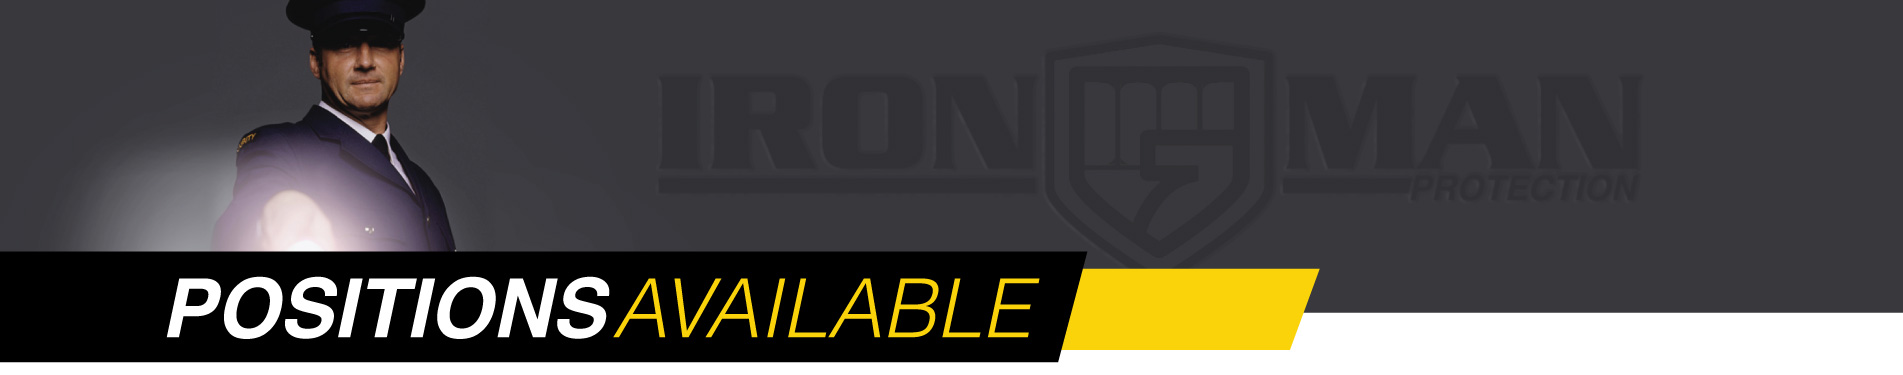 Positions Available With Iron Man Protection